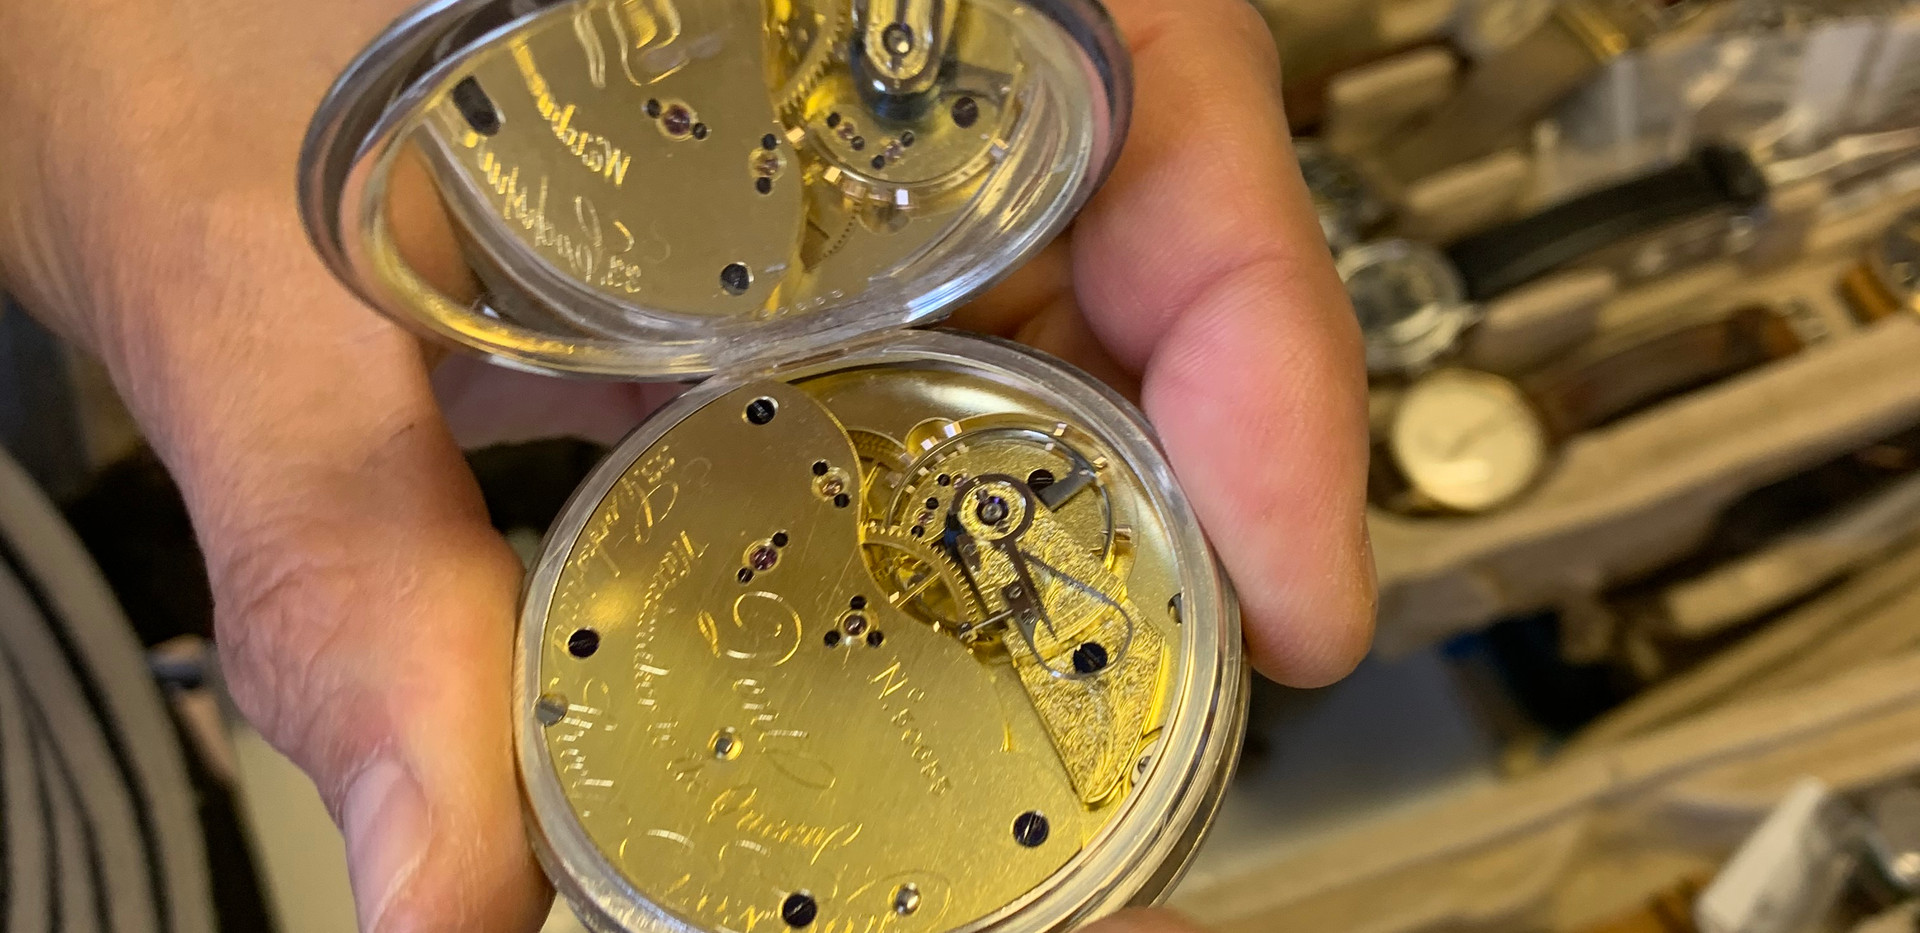 One of Crispins other loves is pocket watches. This stunning example is made by Dent, who were the watchmaker responsible for making the clock in Big Ben.